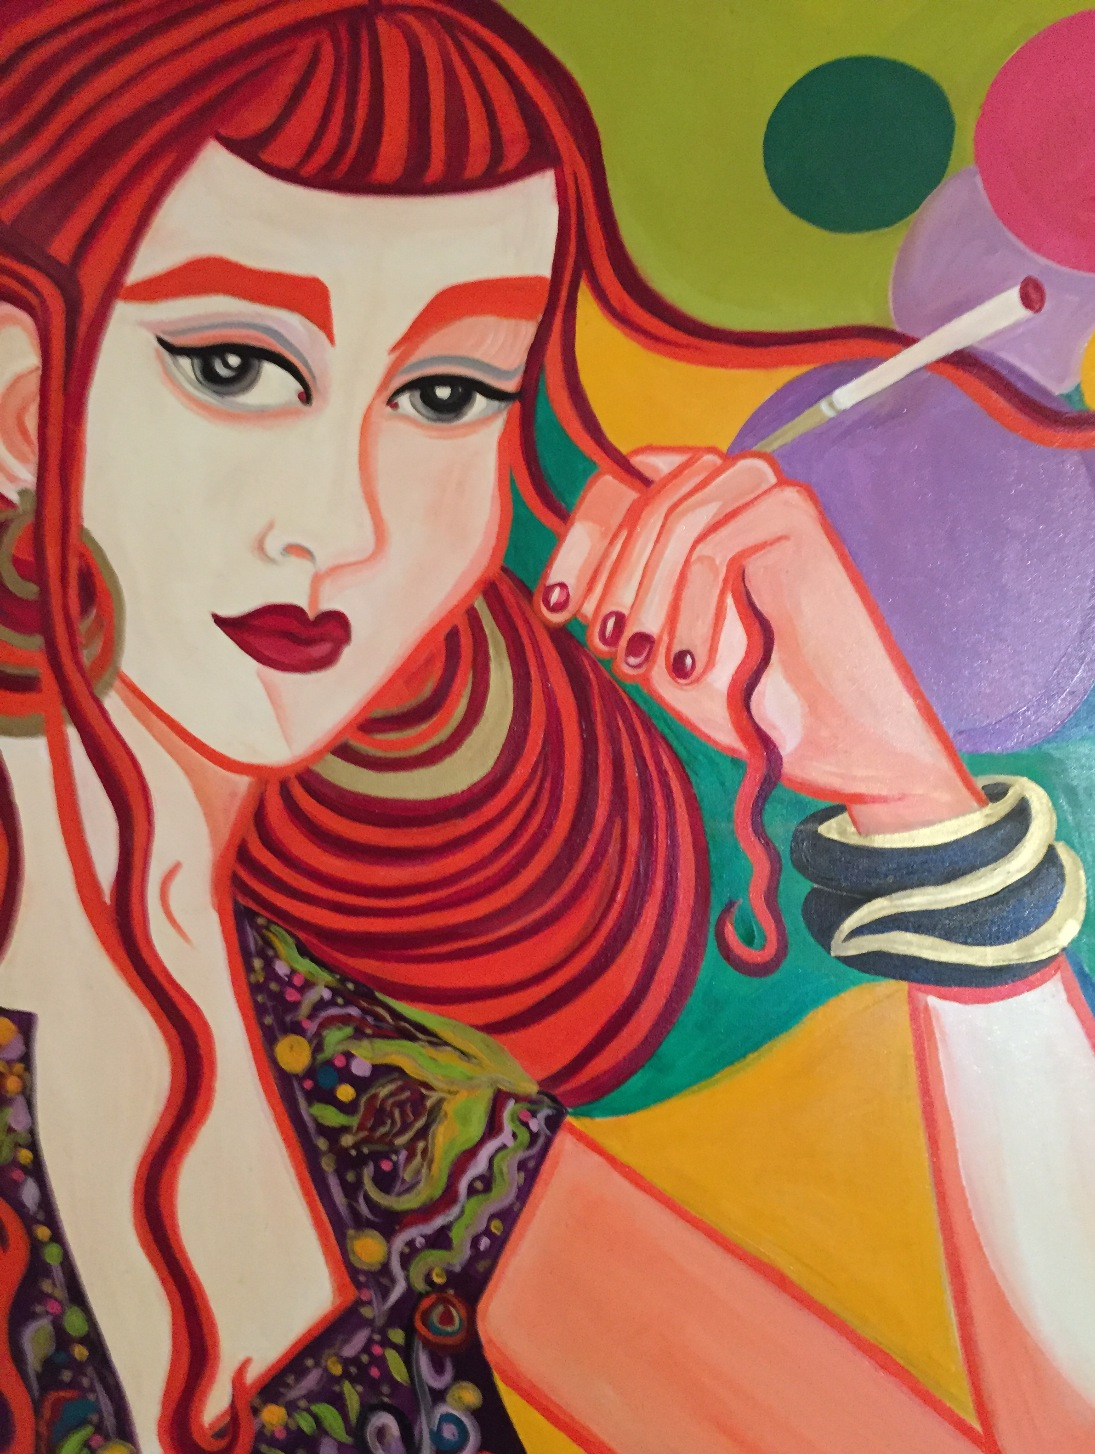 Smoking ladies 1 x 1 m